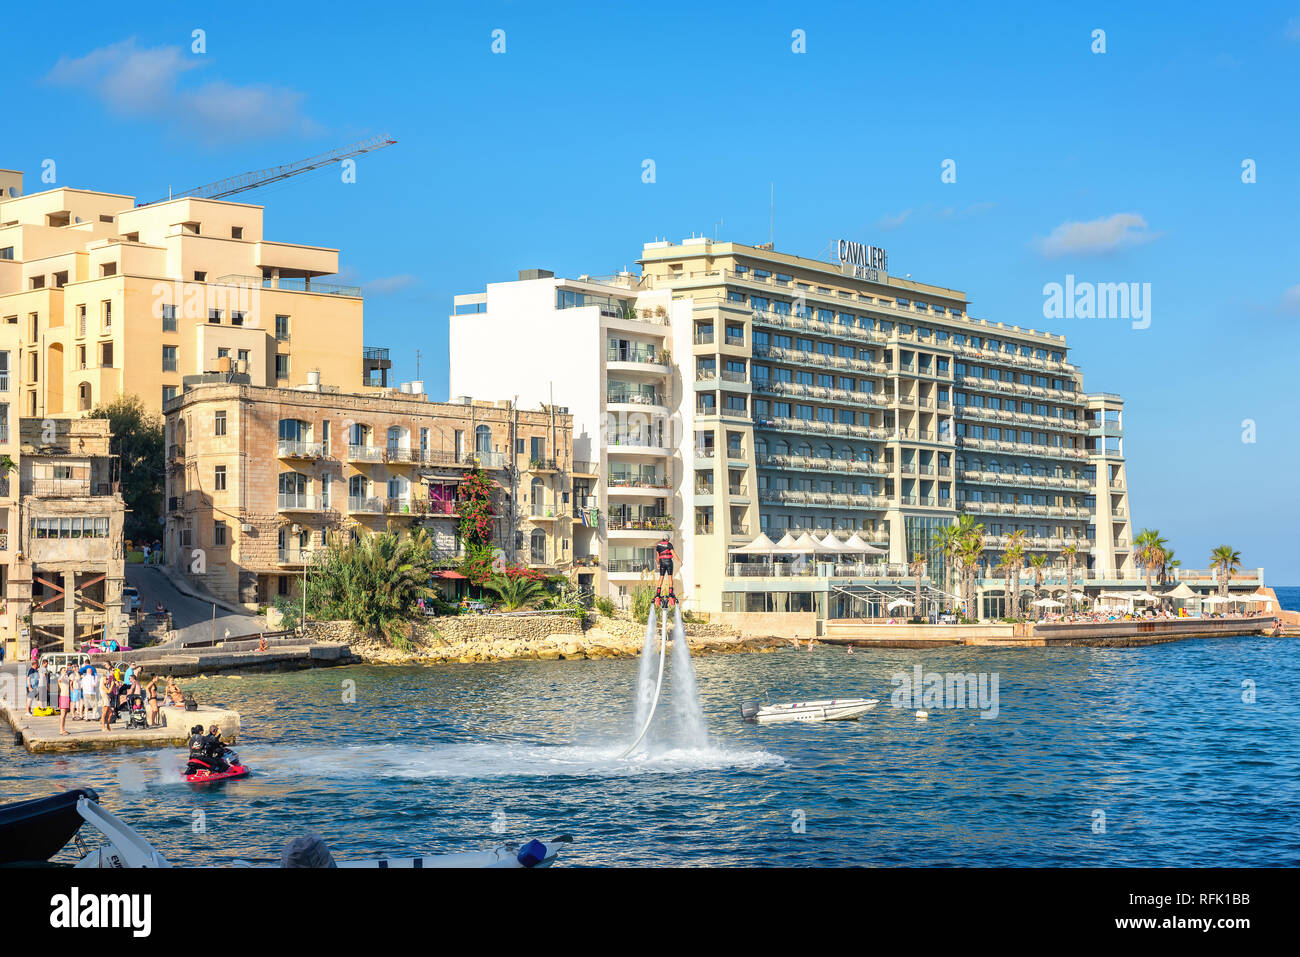 New popular type of extreme water sport called flyboard at St. Julians bay. Malta - Stock Image